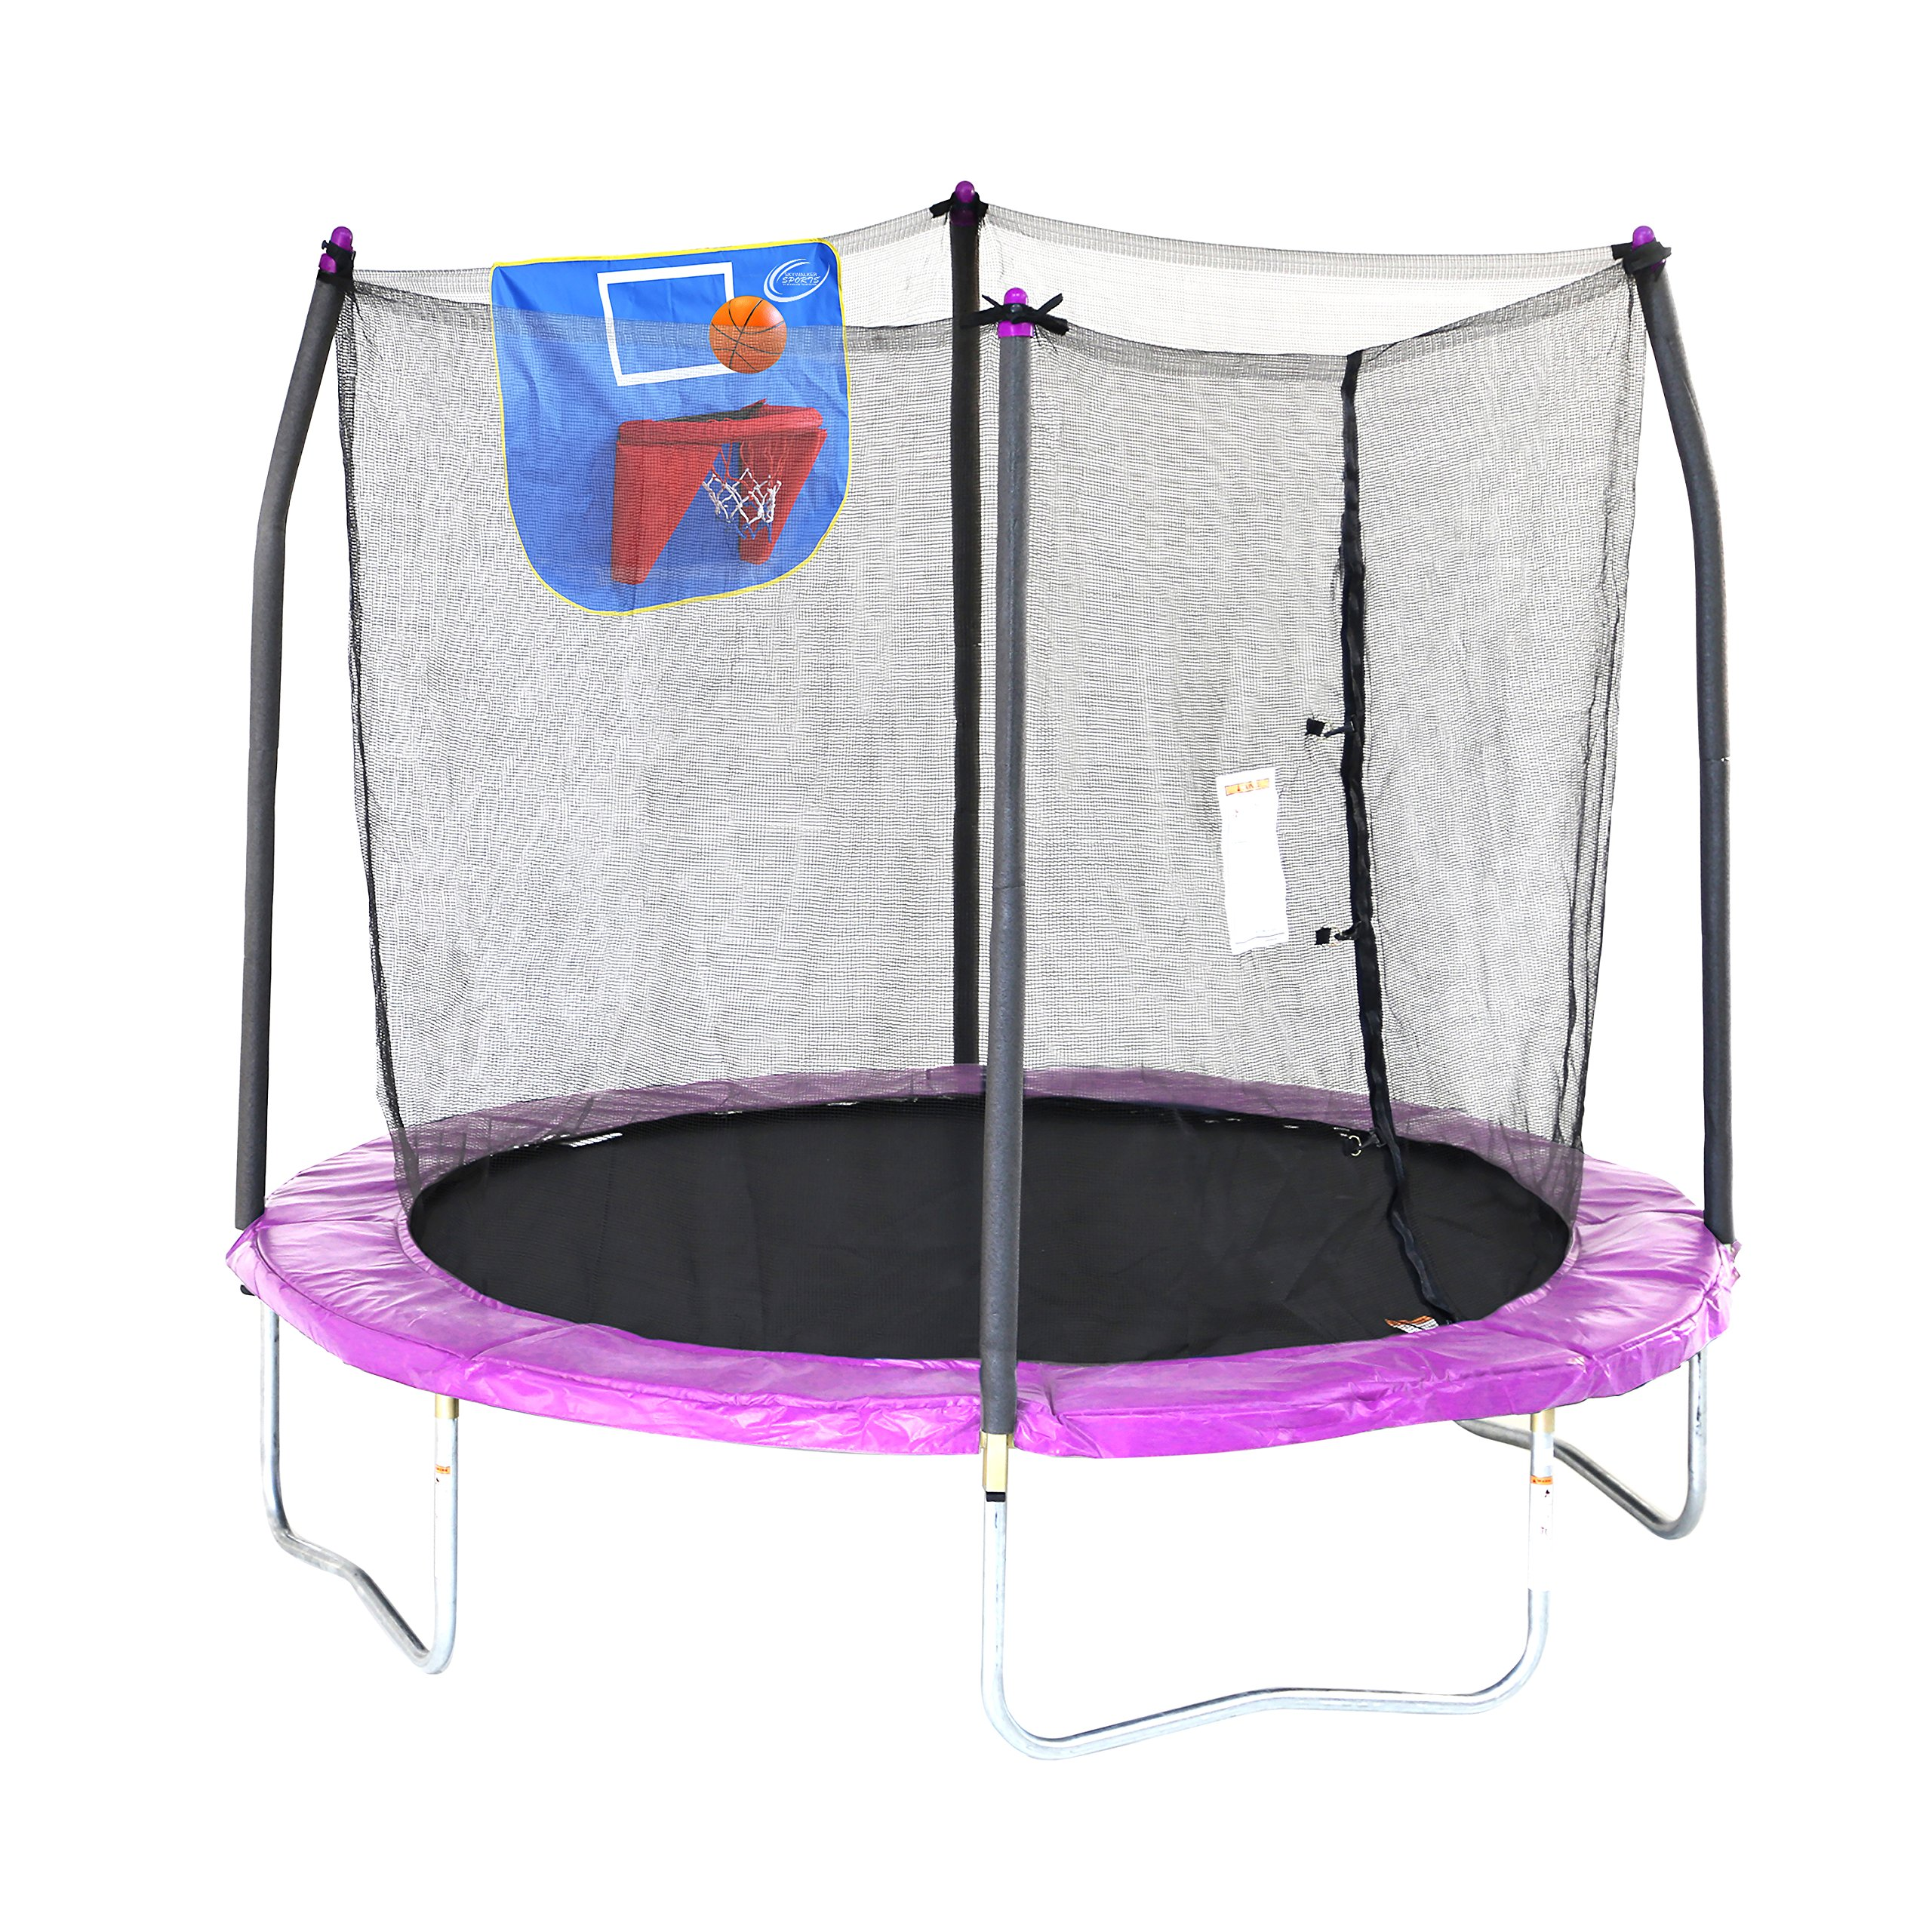 Skywalker Trampolines 8-Feet Jump N' Dunk Trampoline with Safety Enclosure and Basketball Hoop by Skywalker Trampolines